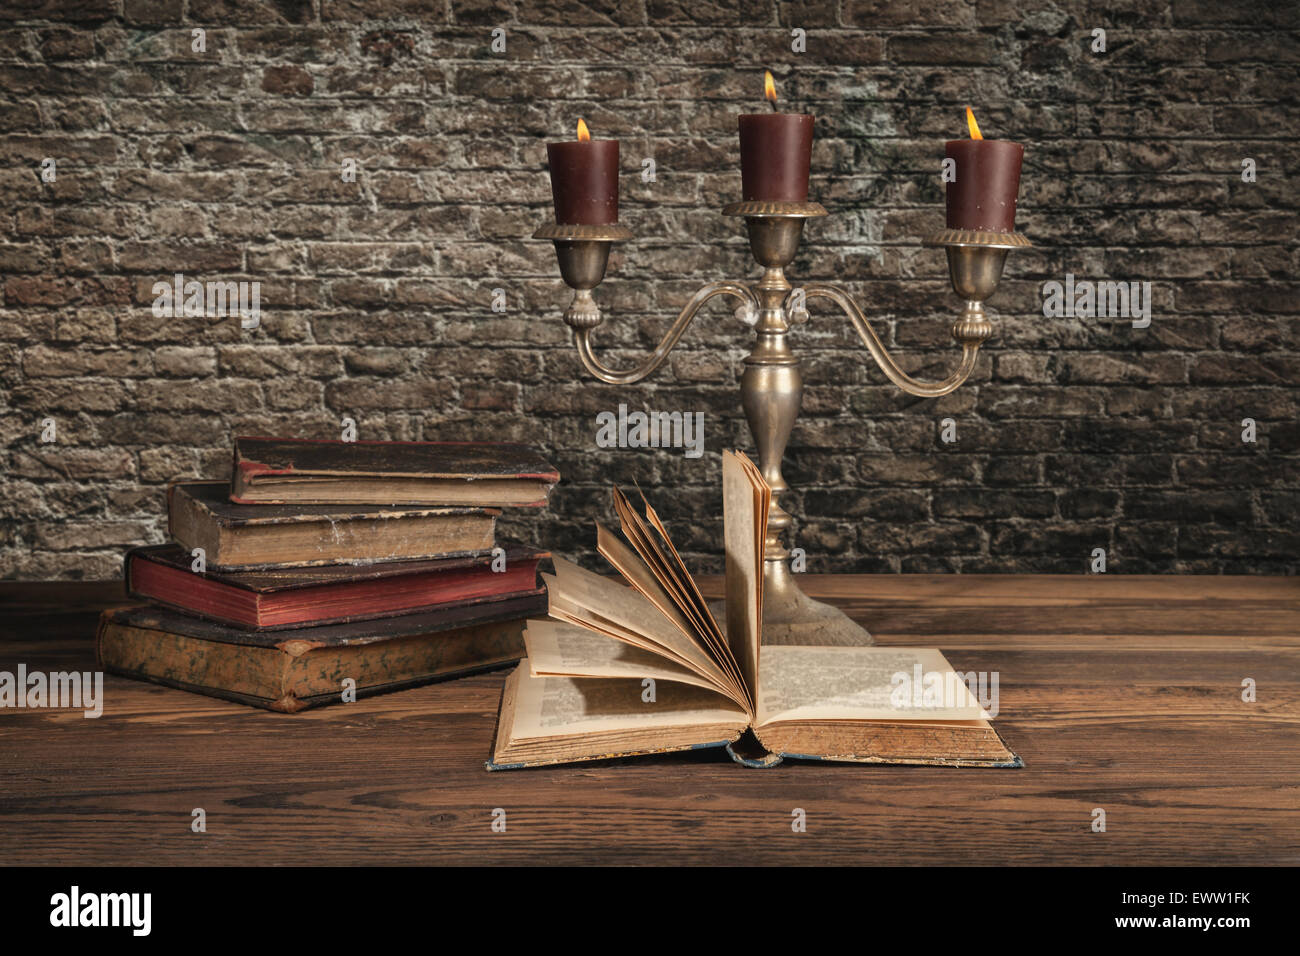 Old vintage books with candles in candlestick - Stock Image